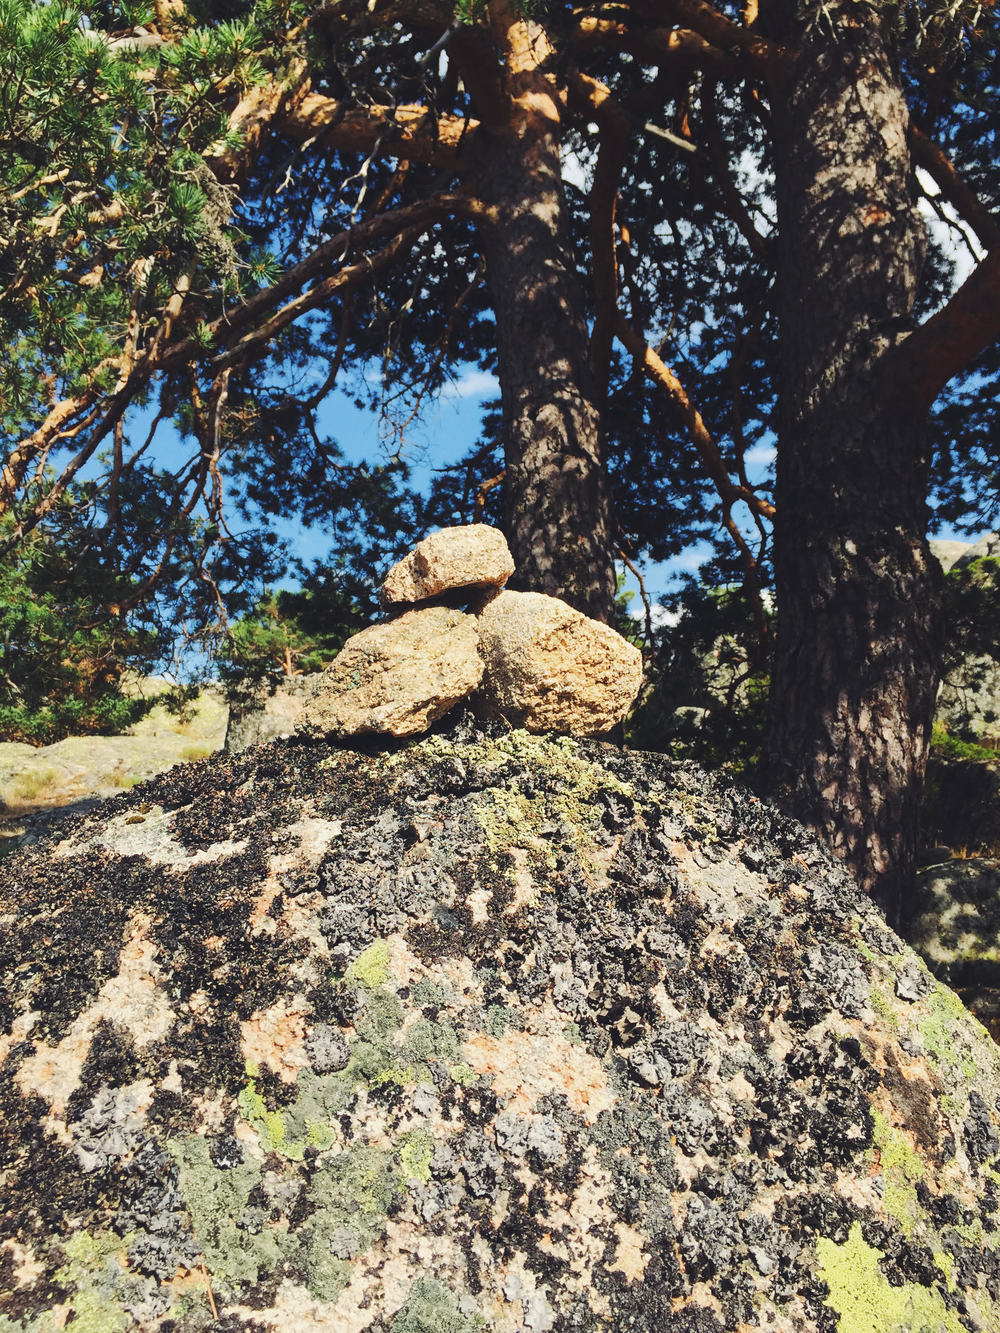 """when travelers separate or must find their way back, they leave a small stack of 3 stones to let them know they're headed in the correct direction. we took it as a good omen to see this. it's the hiker's version of saying, """"you're on the right path."""""""